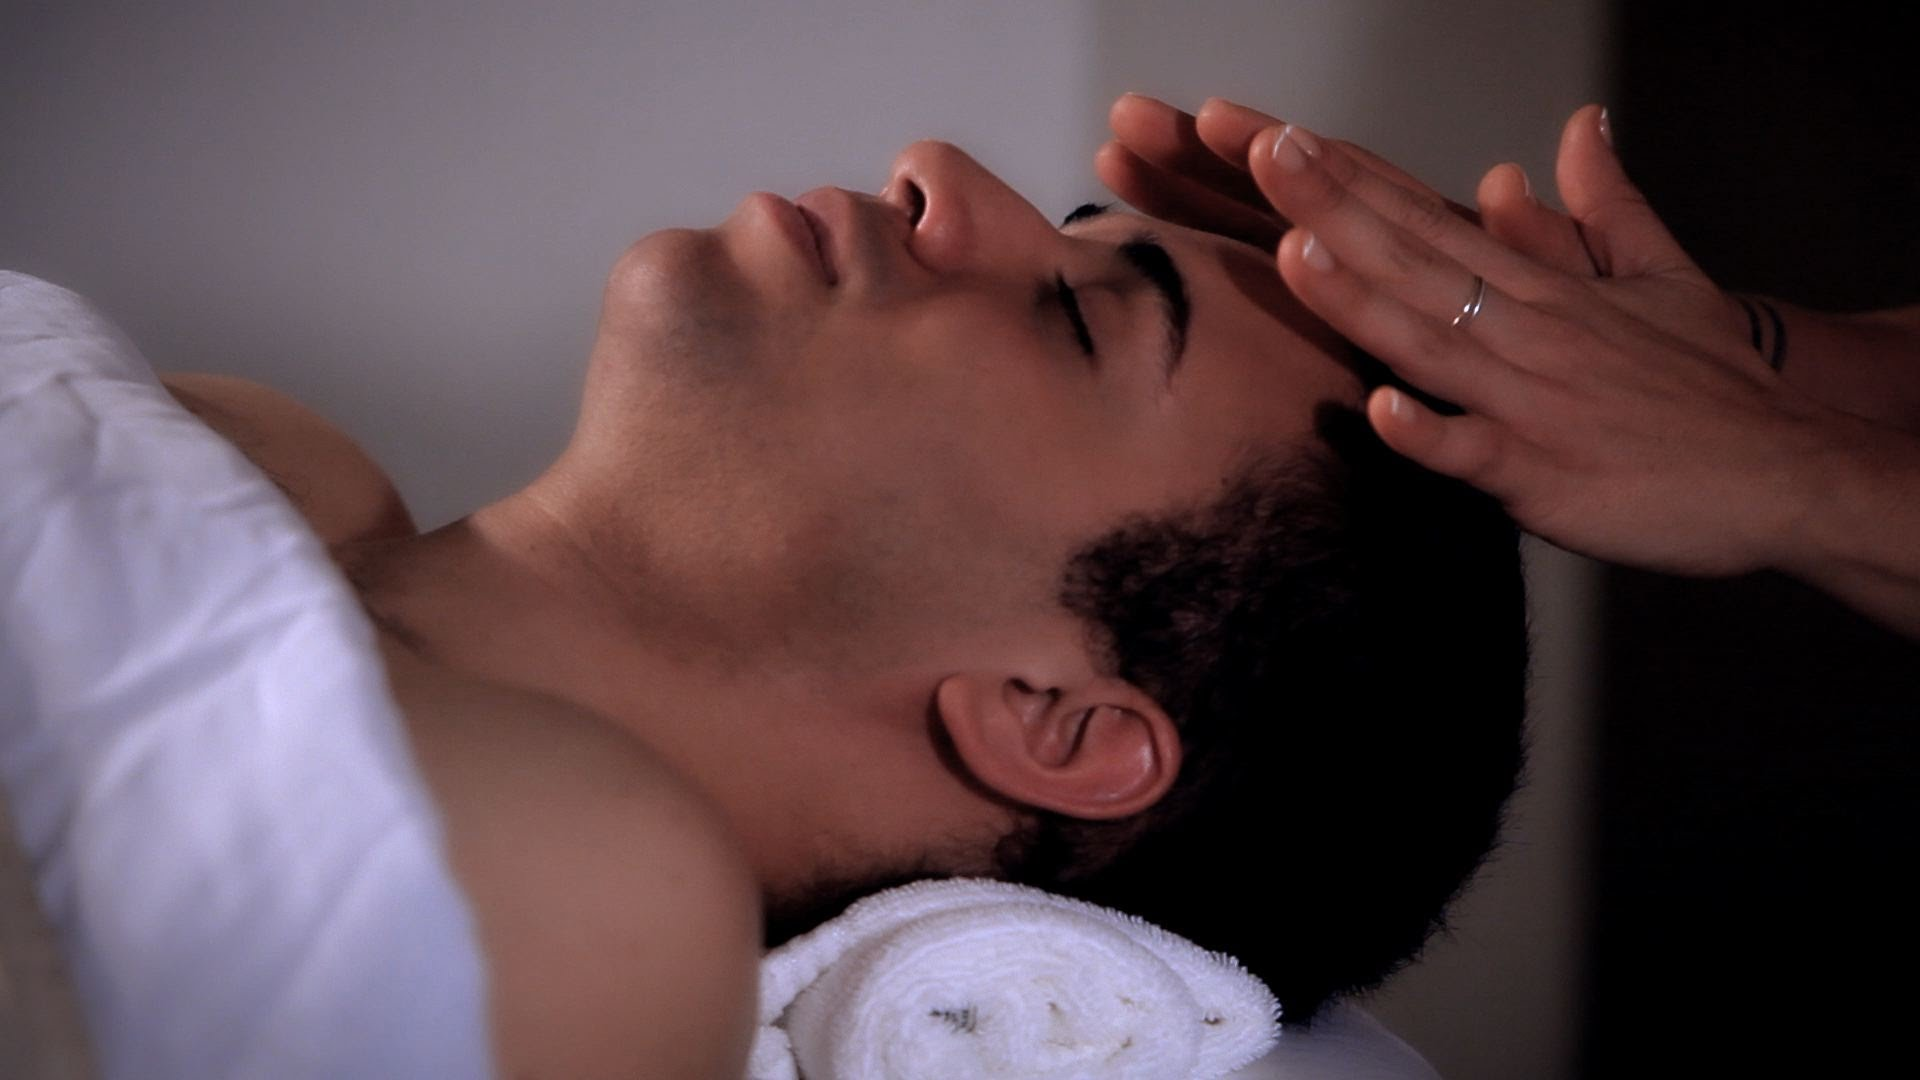 6 Surprising Parts of the Body to Massage to Relieve Your Headaches